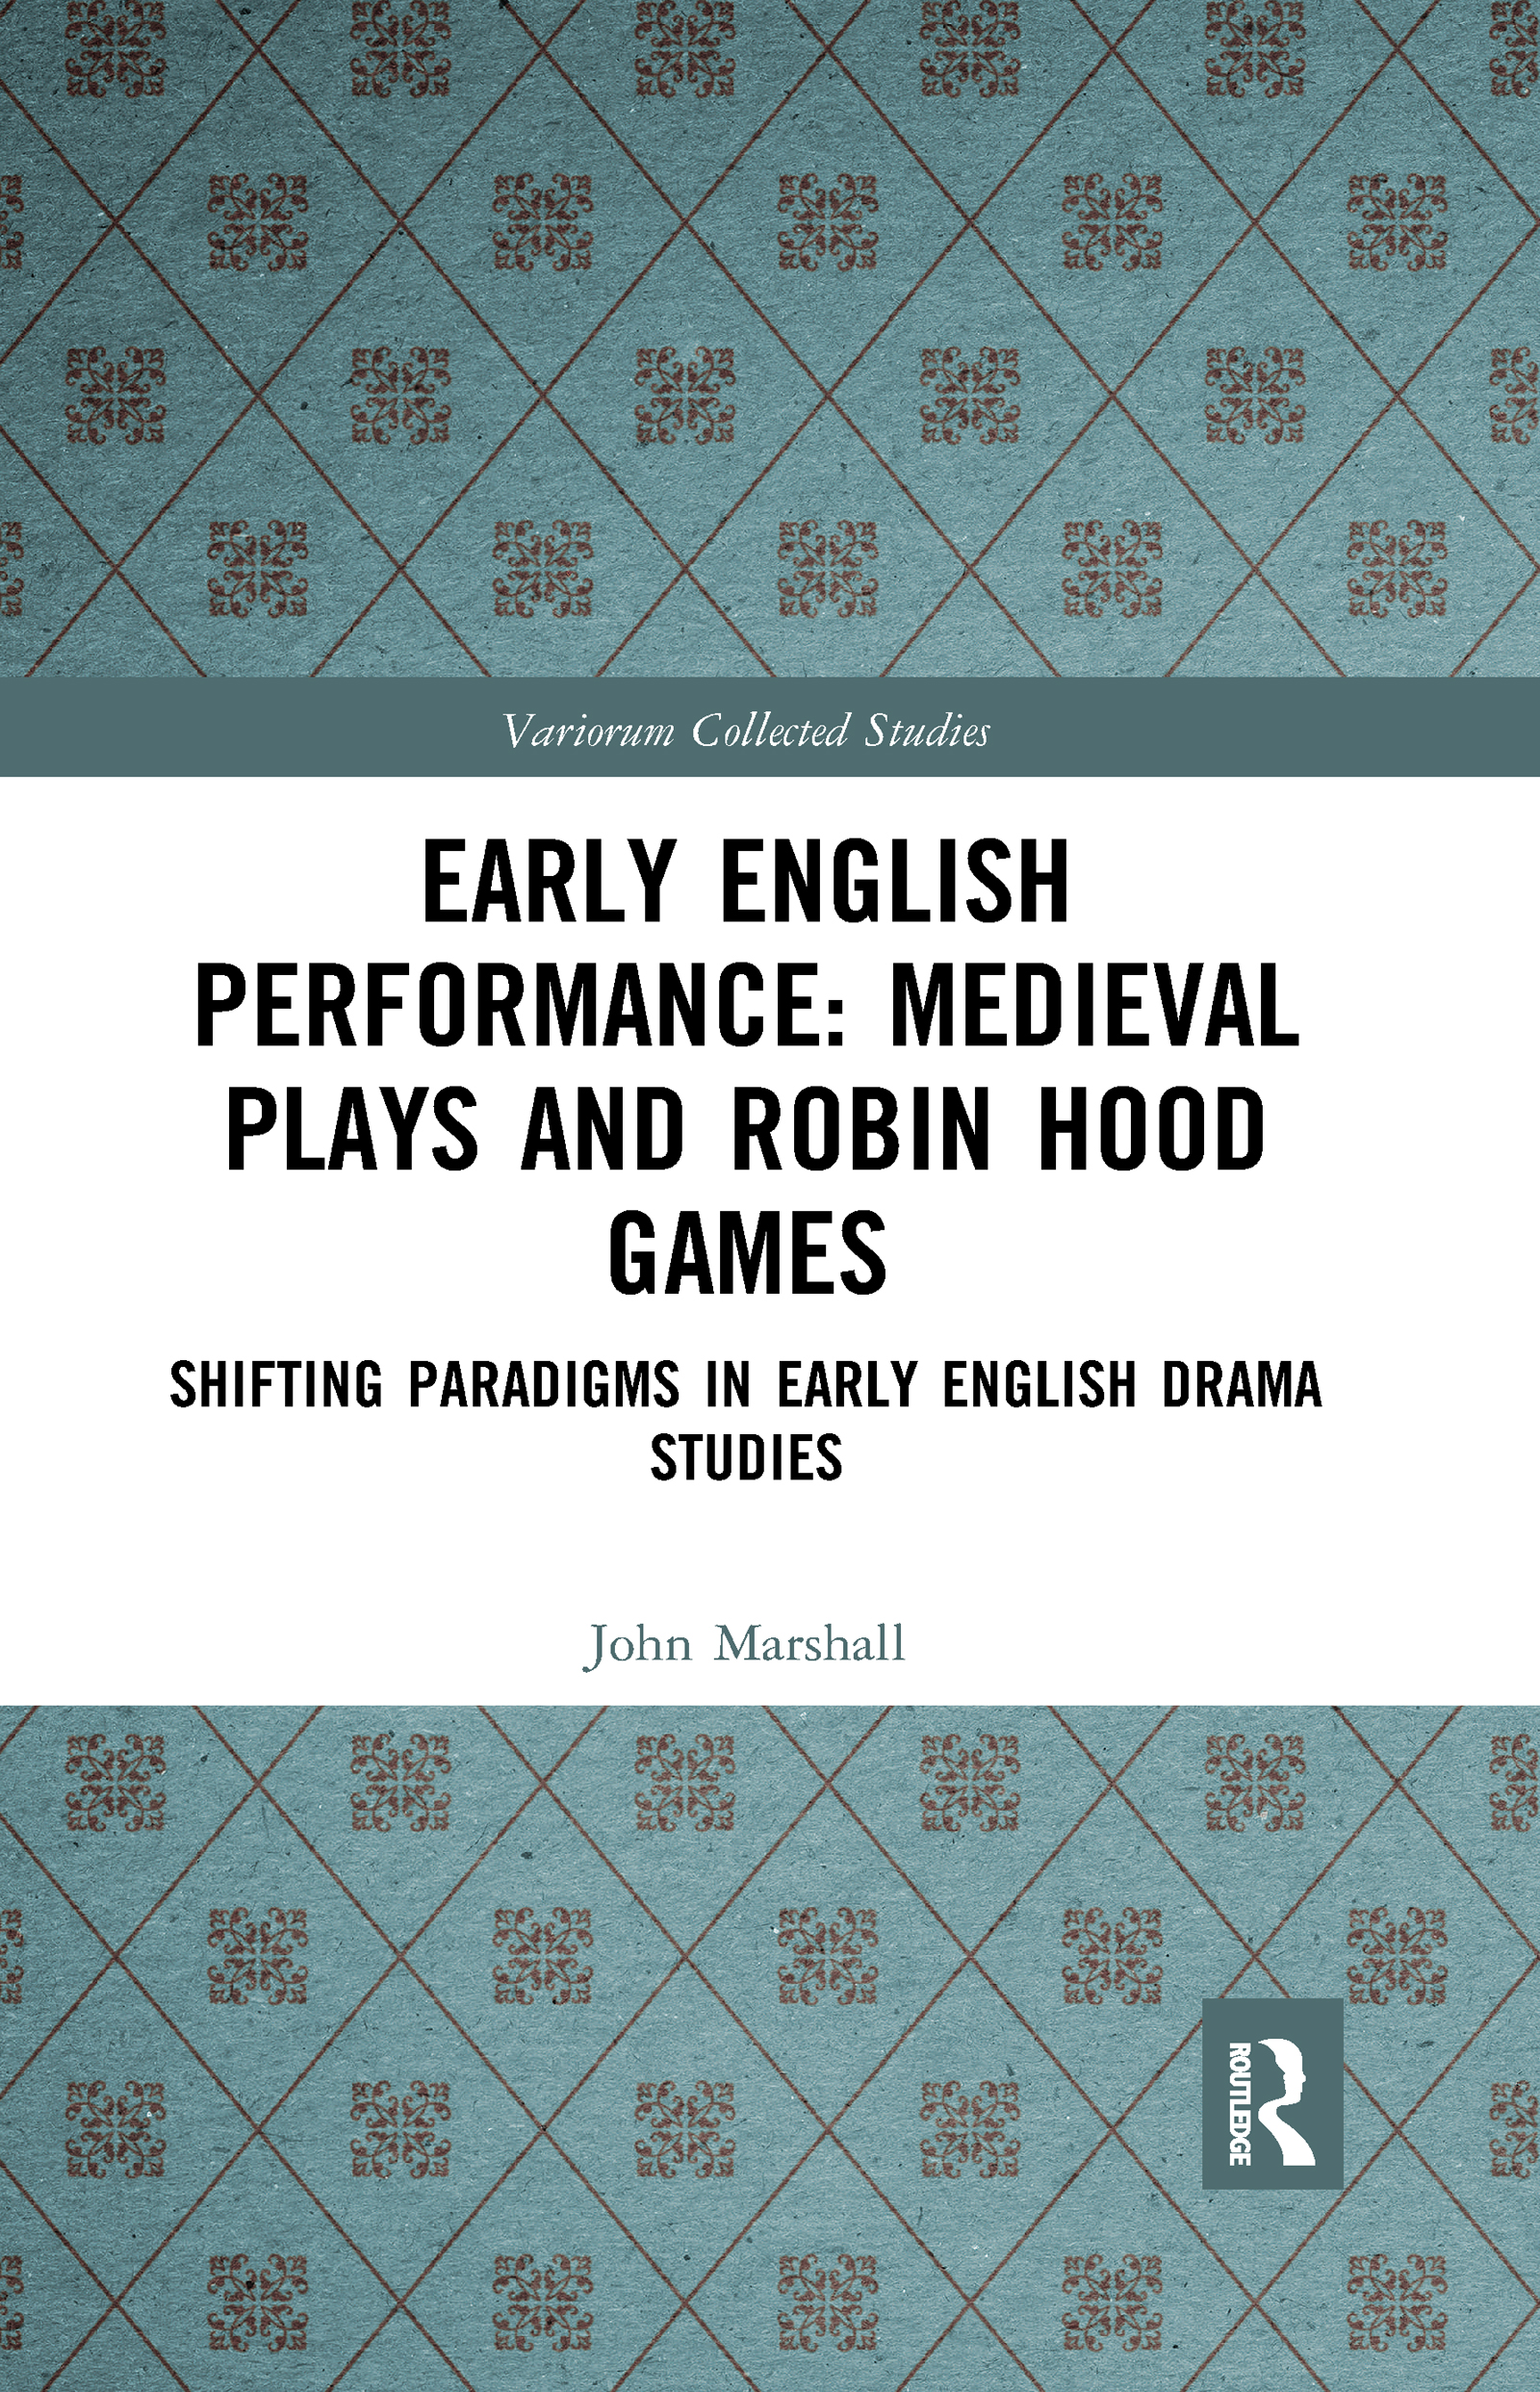 Early English Performance: Medieval Plays and Robin Hood Games